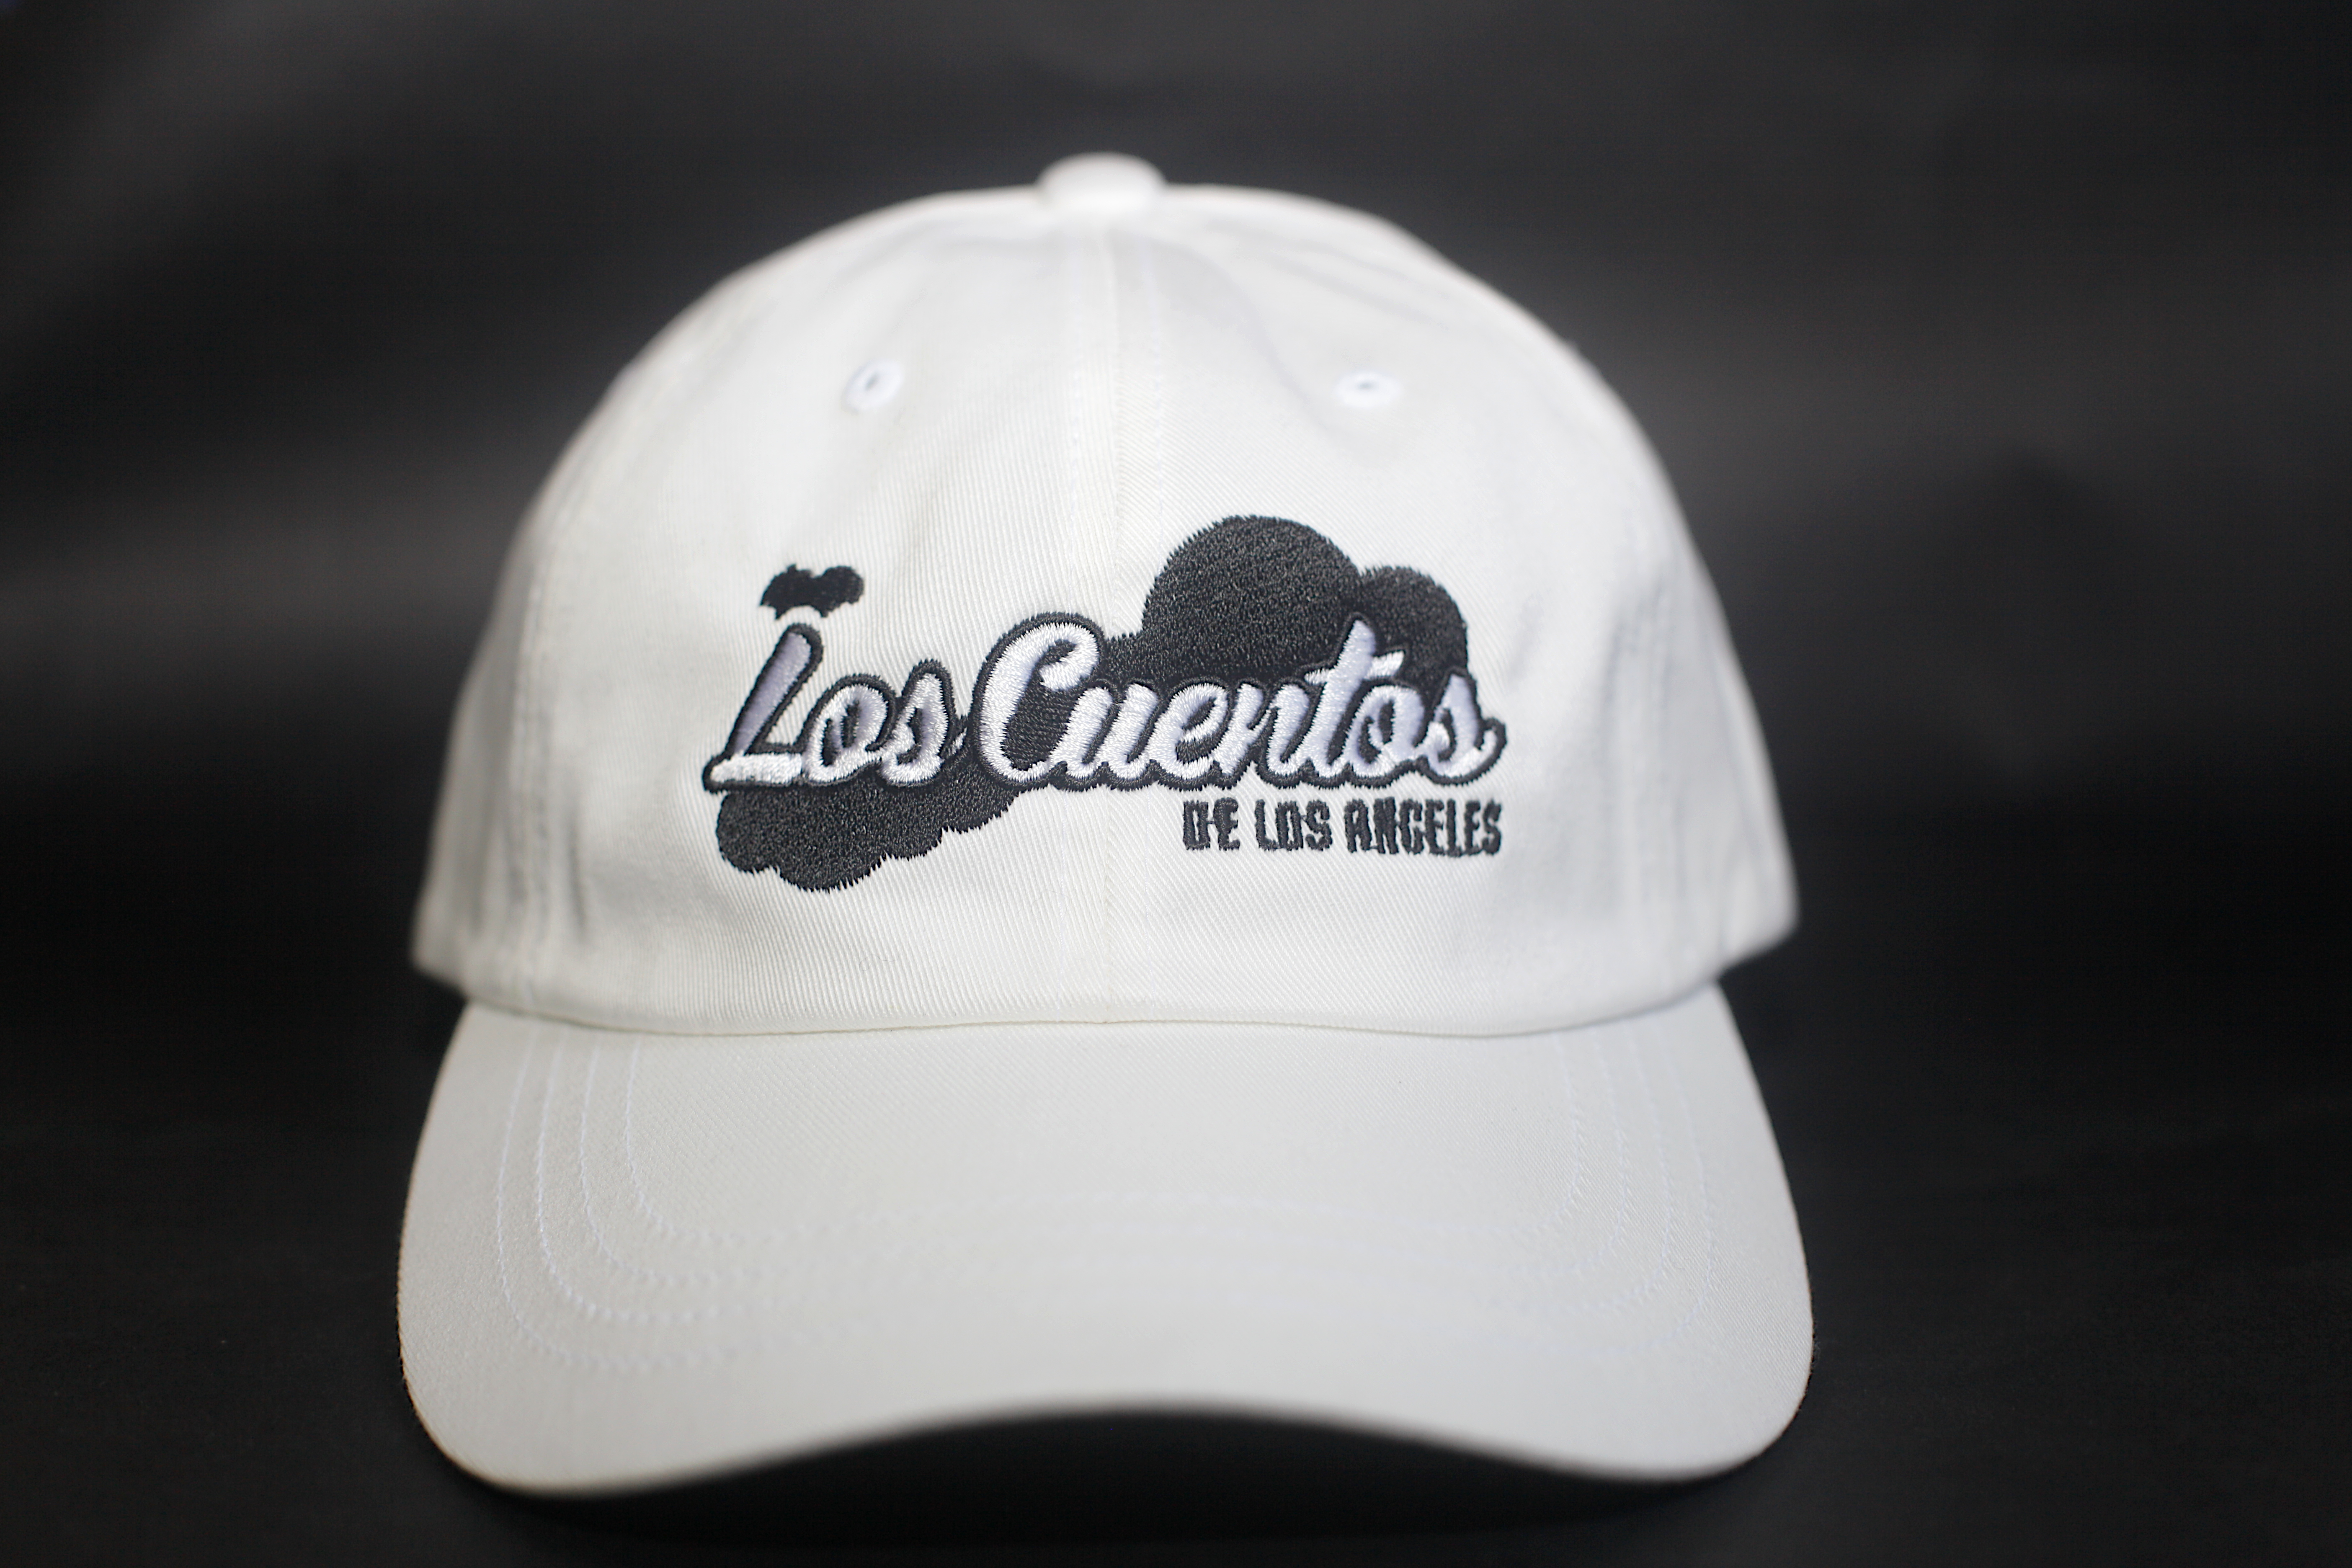 A white Los Cuentos hat with Black lining and stiching for Los Cuentos